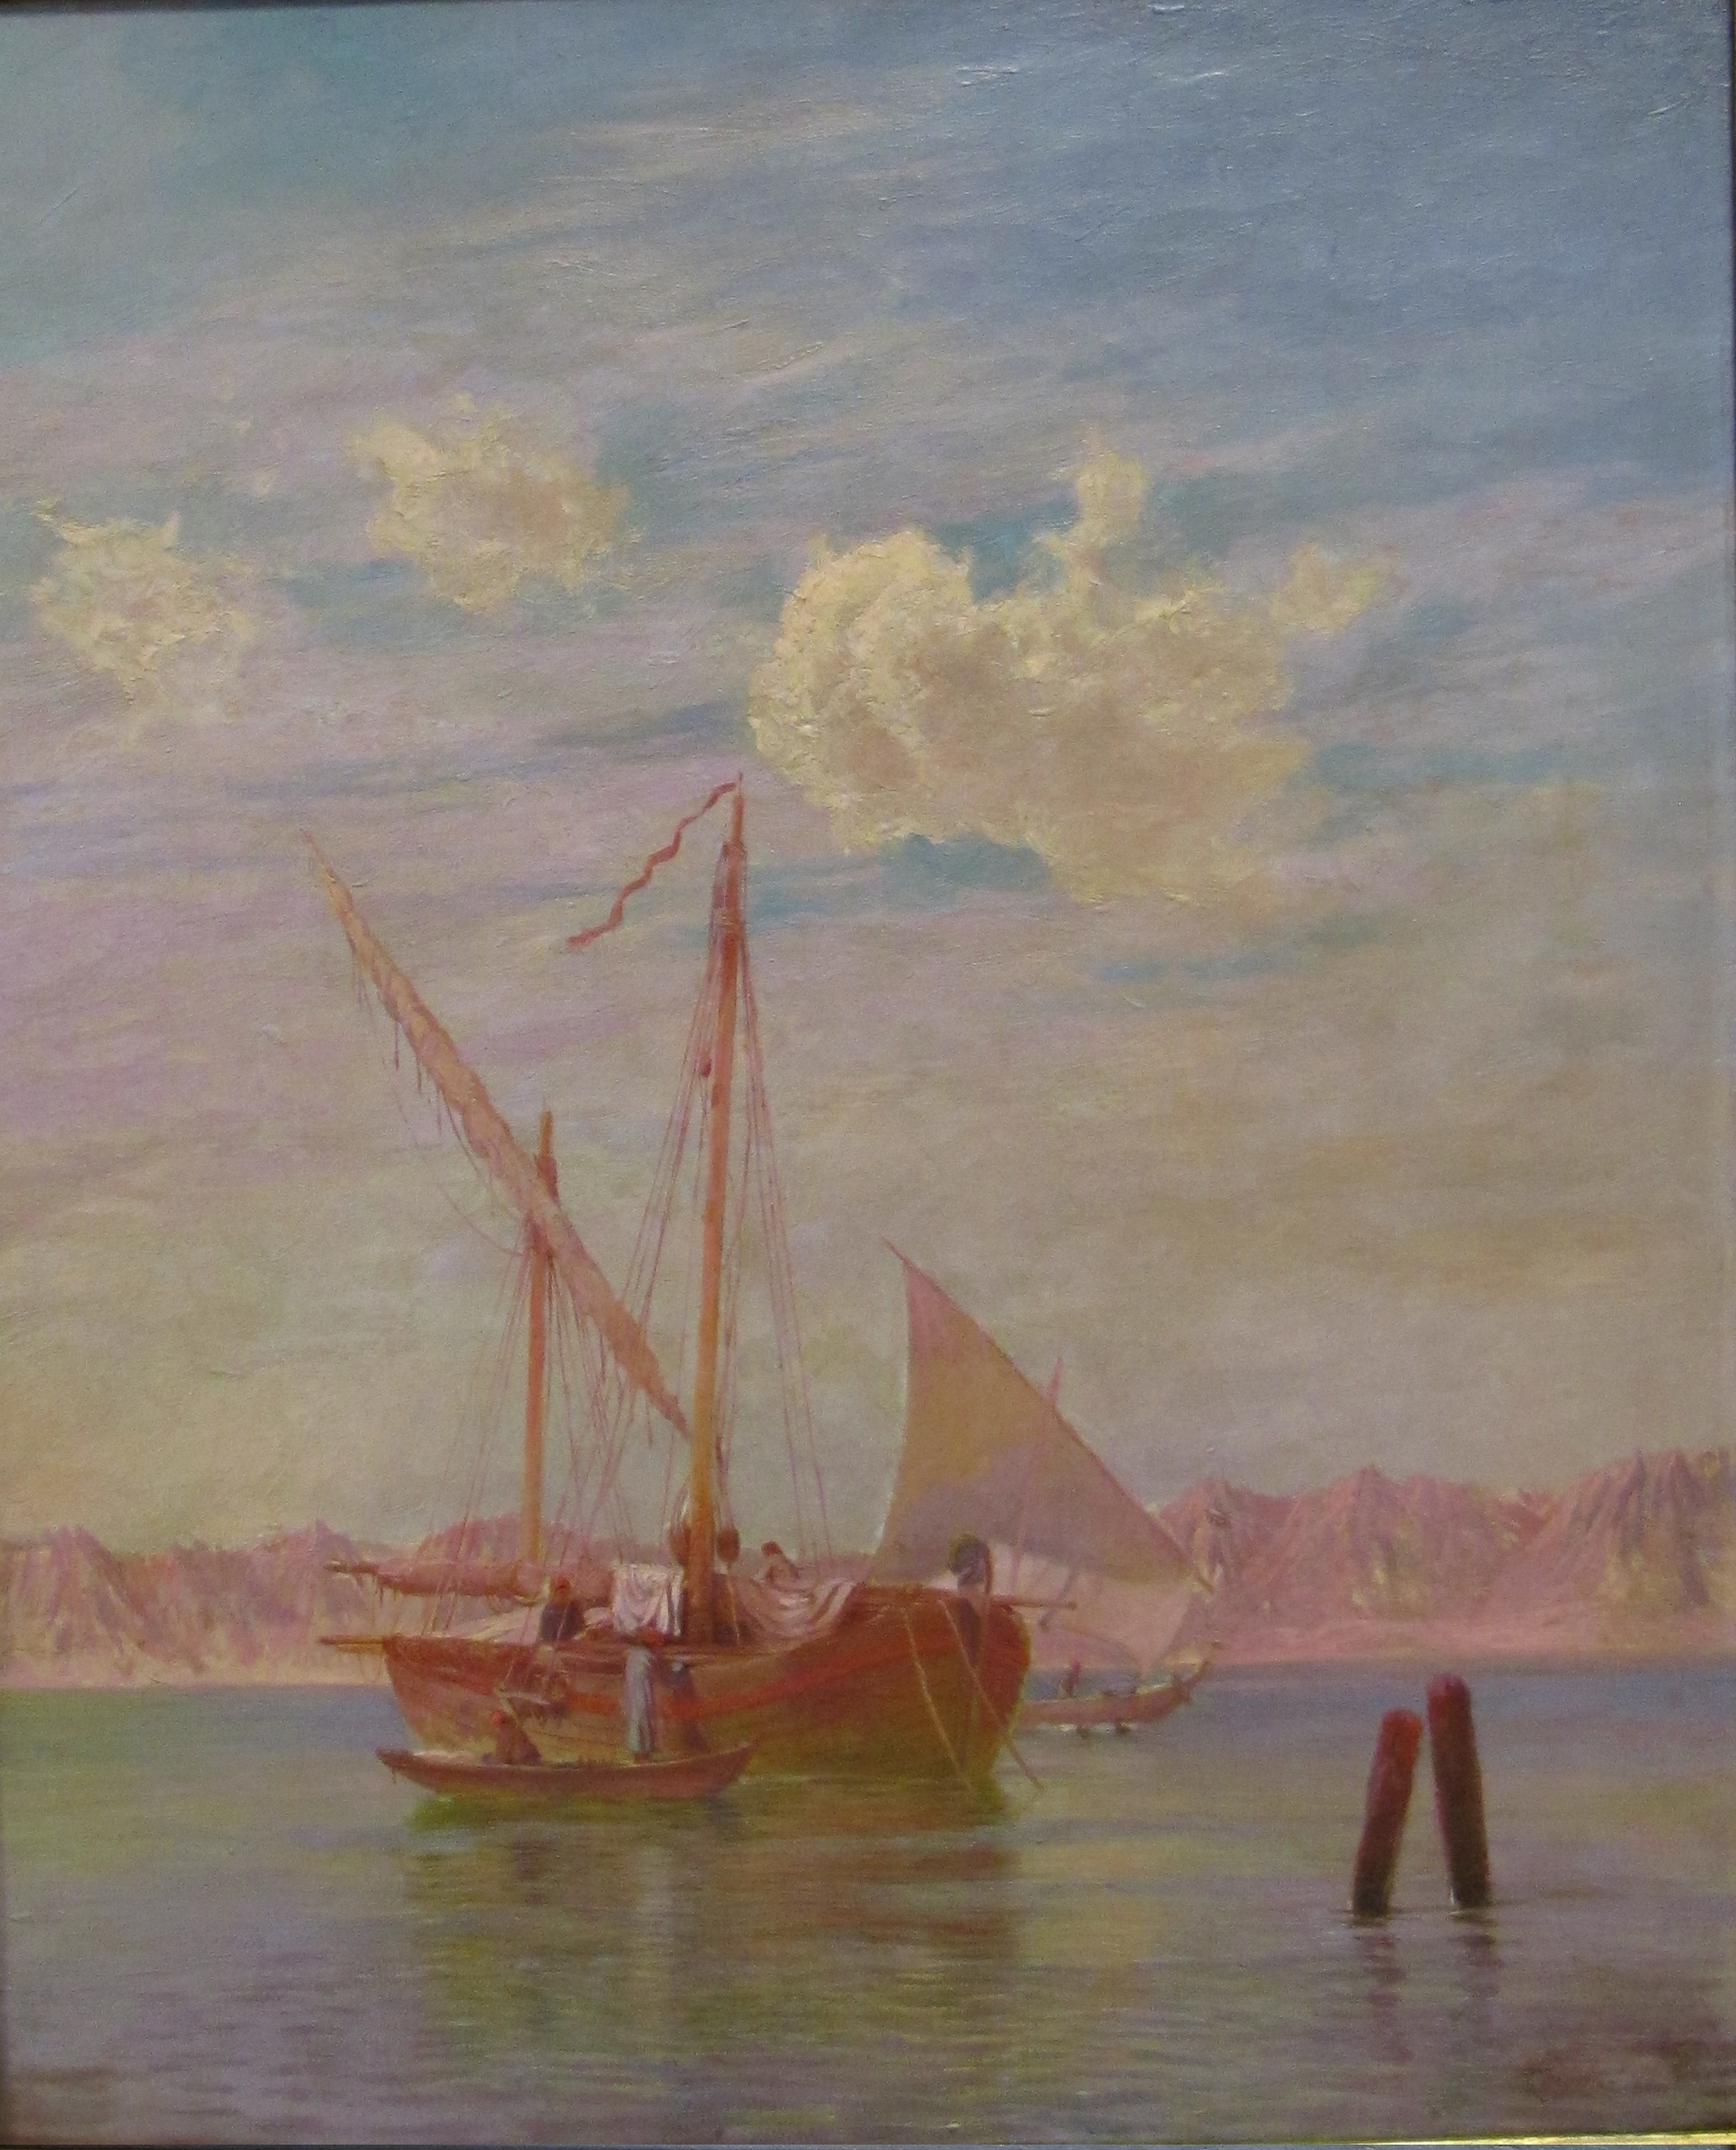 Painting of a boat with sail on the Suez